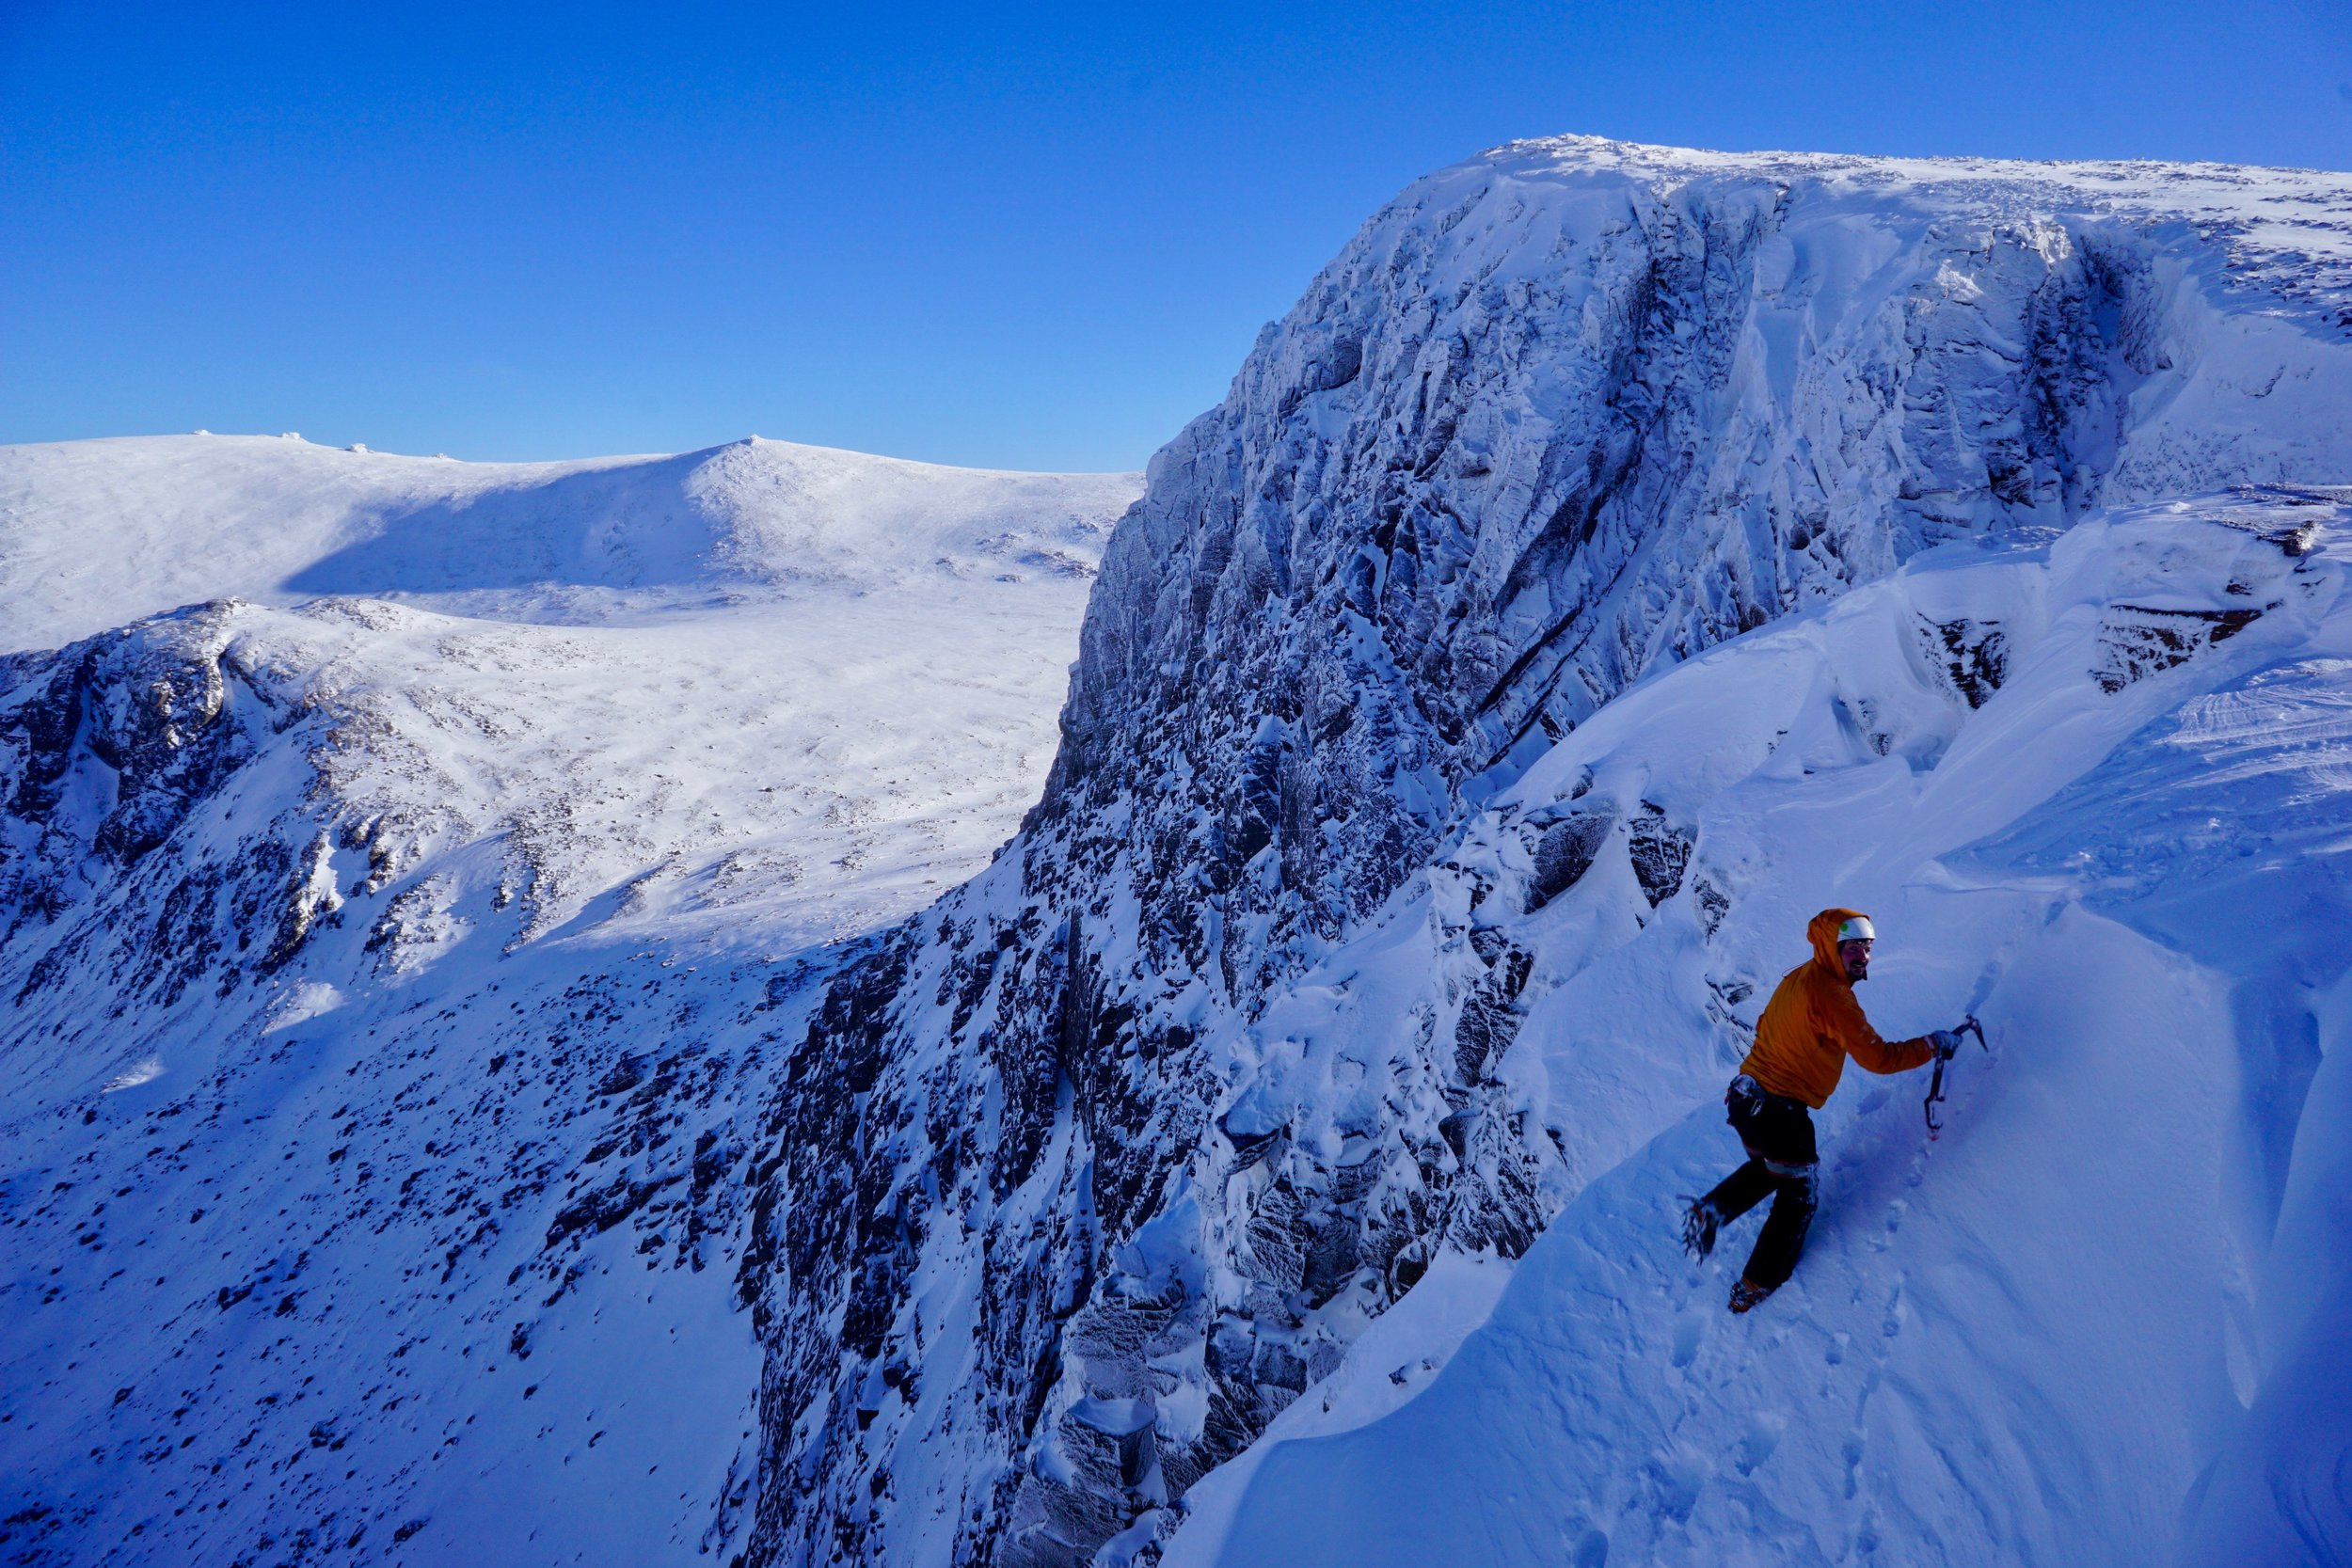 Ben Silvestre soloing out of Sticil Face (V, 5), Shelterstone, Caringorms.